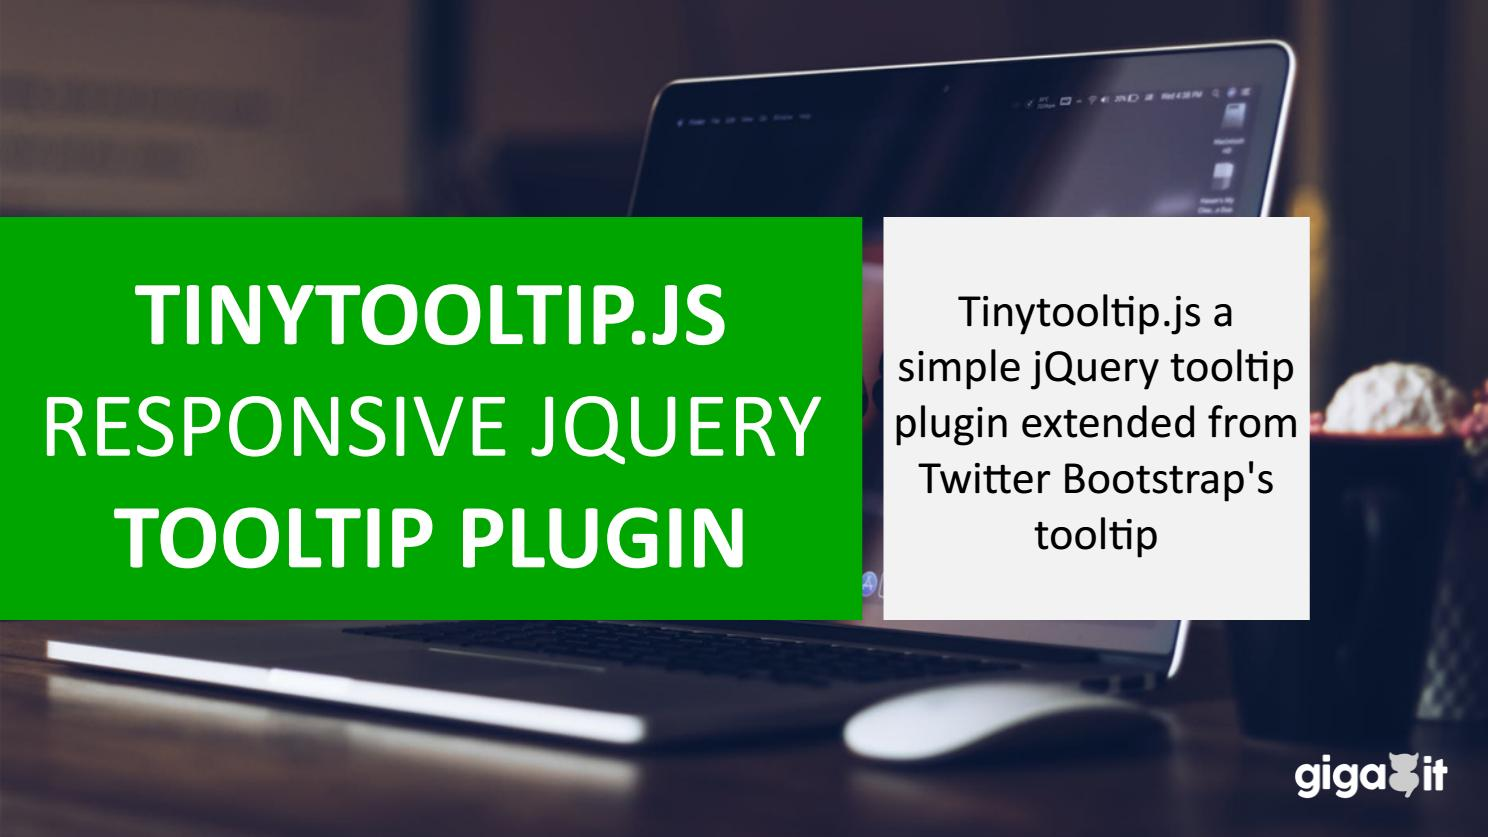 TINYTOOLTIP JS – RESPONSIVE JQUERY TOOLTIP PLUGIN by